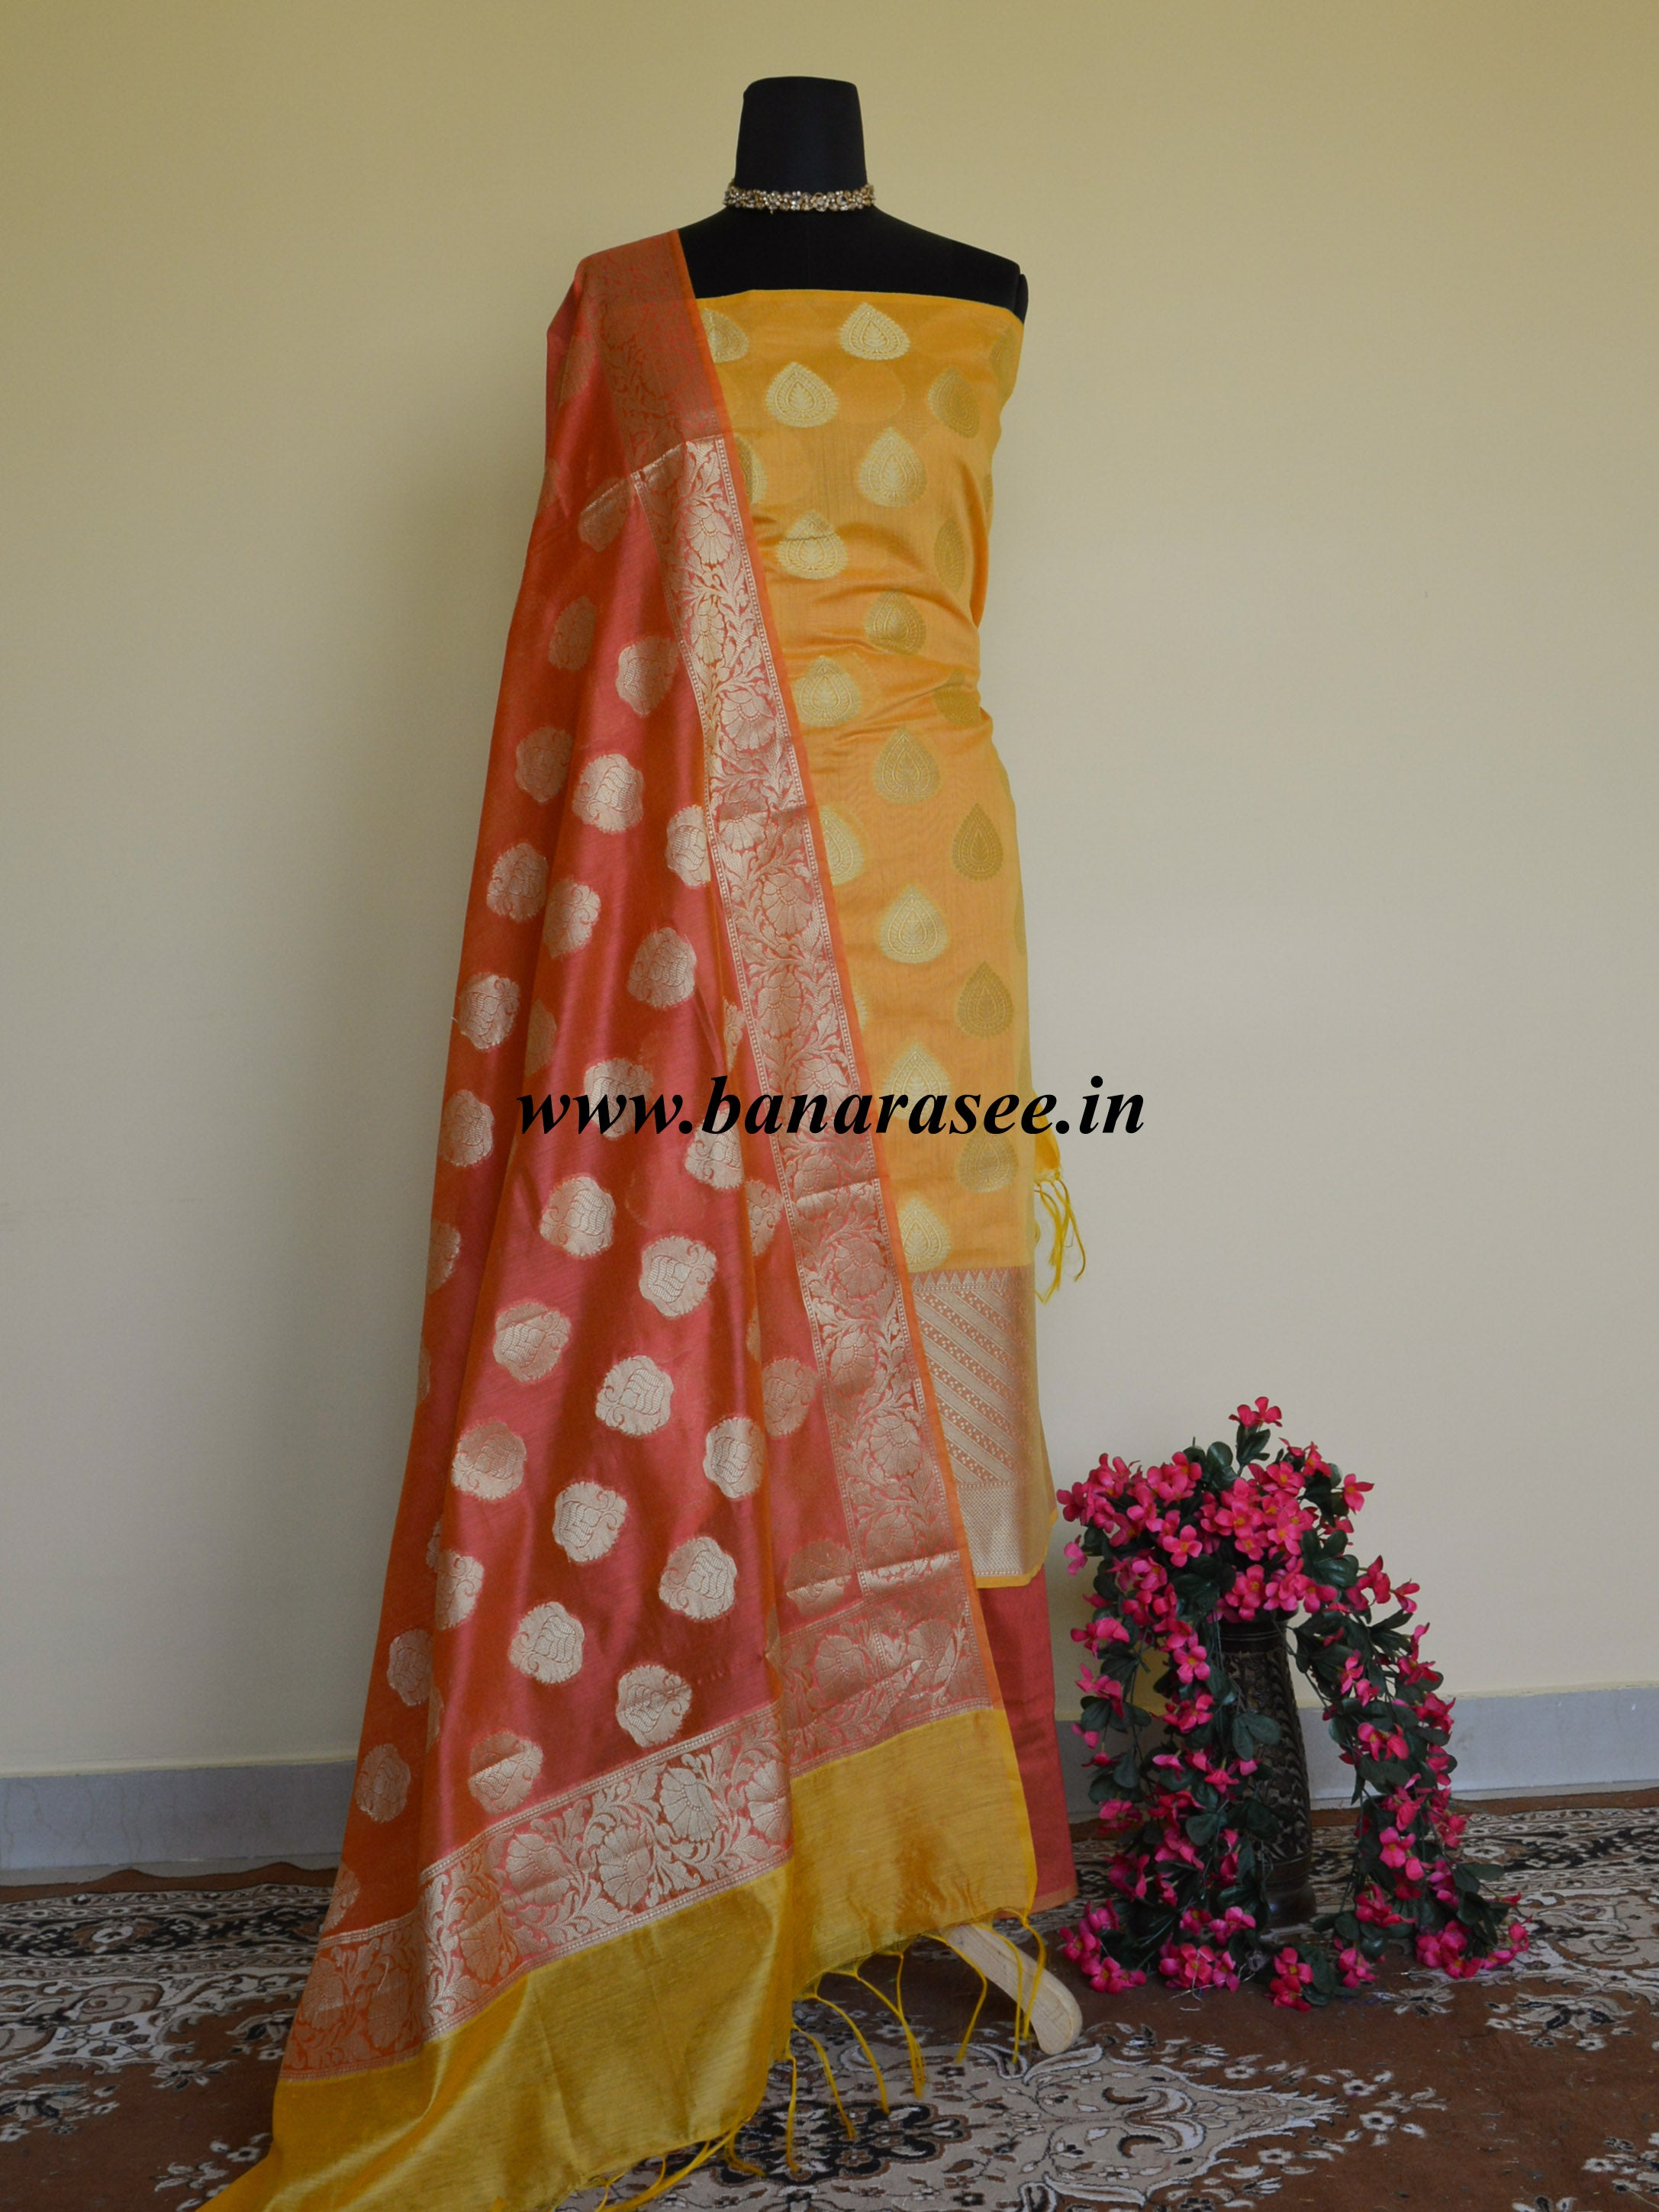 Banarasee Chanderi Cotton Salwar Kameez Fabric With Rust Zari Dupatta-Yellow